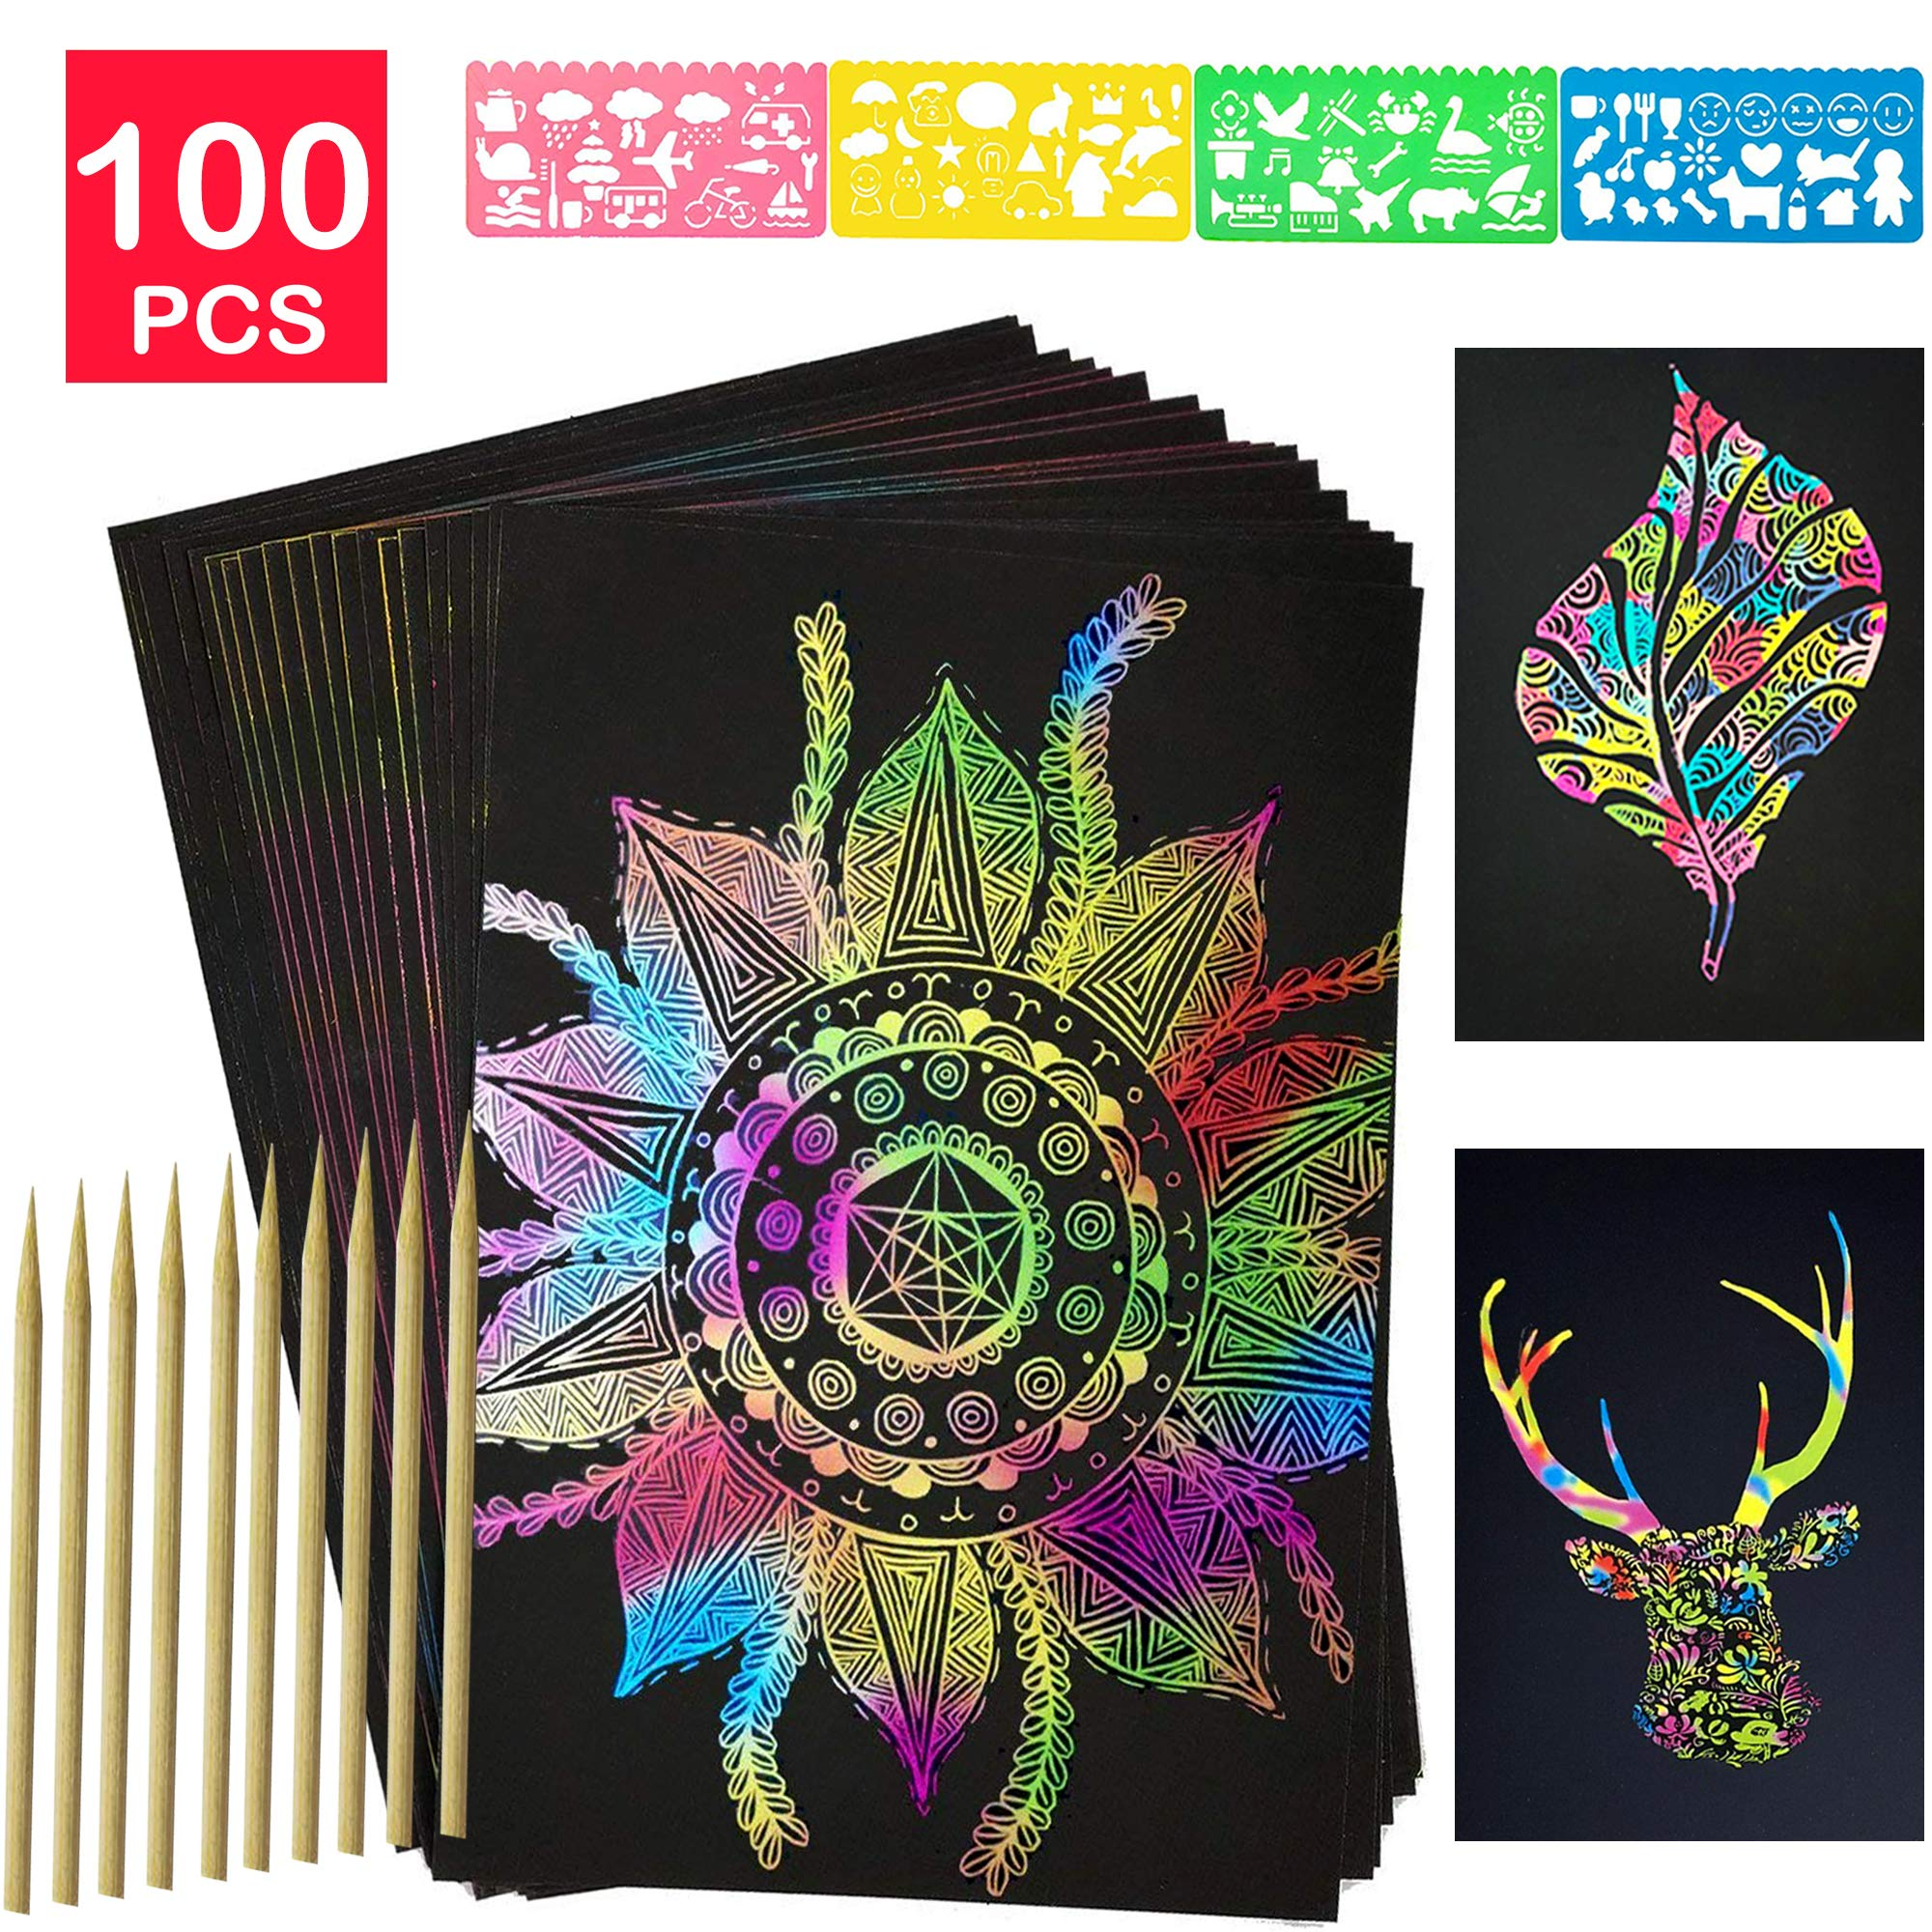 YUKKLY 100 Sheets Rainbow Scratch Paper; Scratch Art Paper; Black Doodle Pad with Rainbow Background with 10 Wooden Styluses and 4 Drawing Stencils…